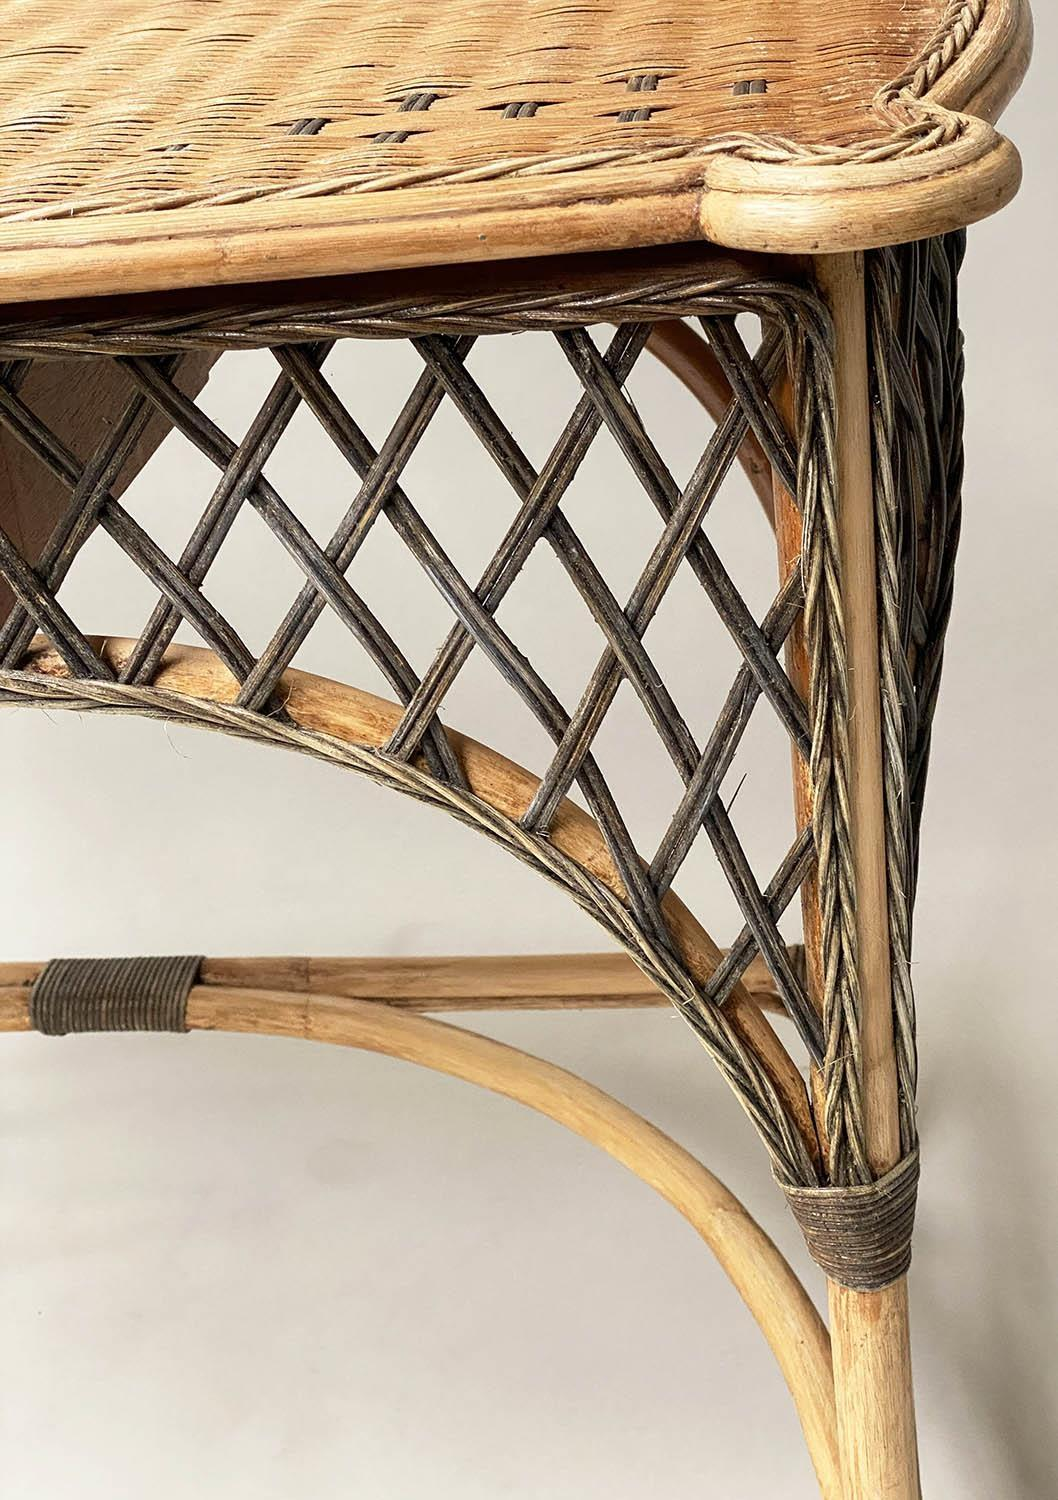 SIDE/WRITING TABLE, vintage Ralph Lauren style two tone rattan with gallery and frieze drawer, 103cm - Image 3 of 6